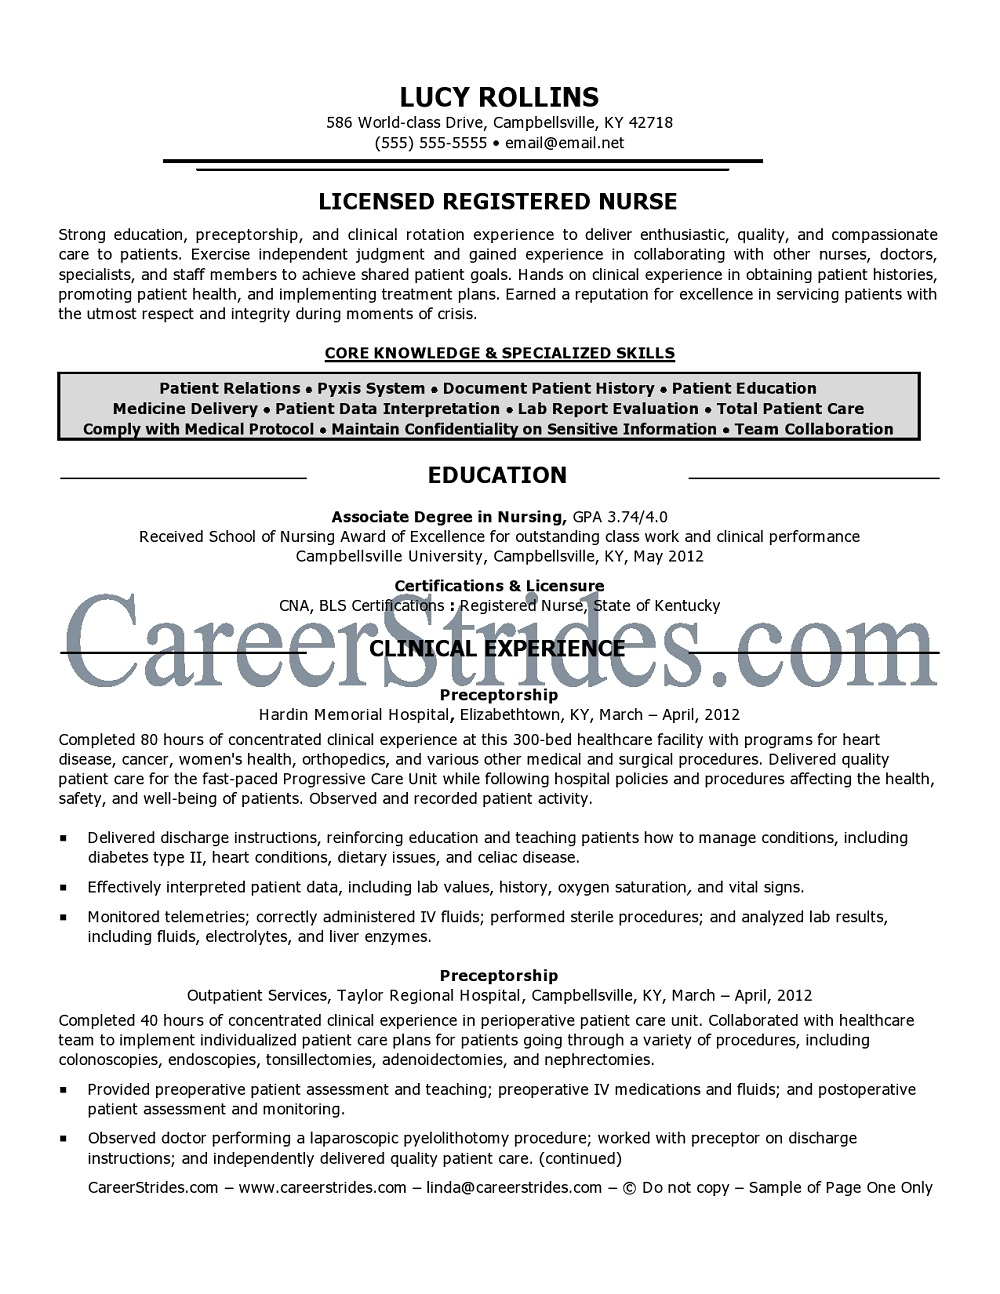 example nursing resume professional resume examples nursing quotes quotesgram professional resume examples nursing quotes